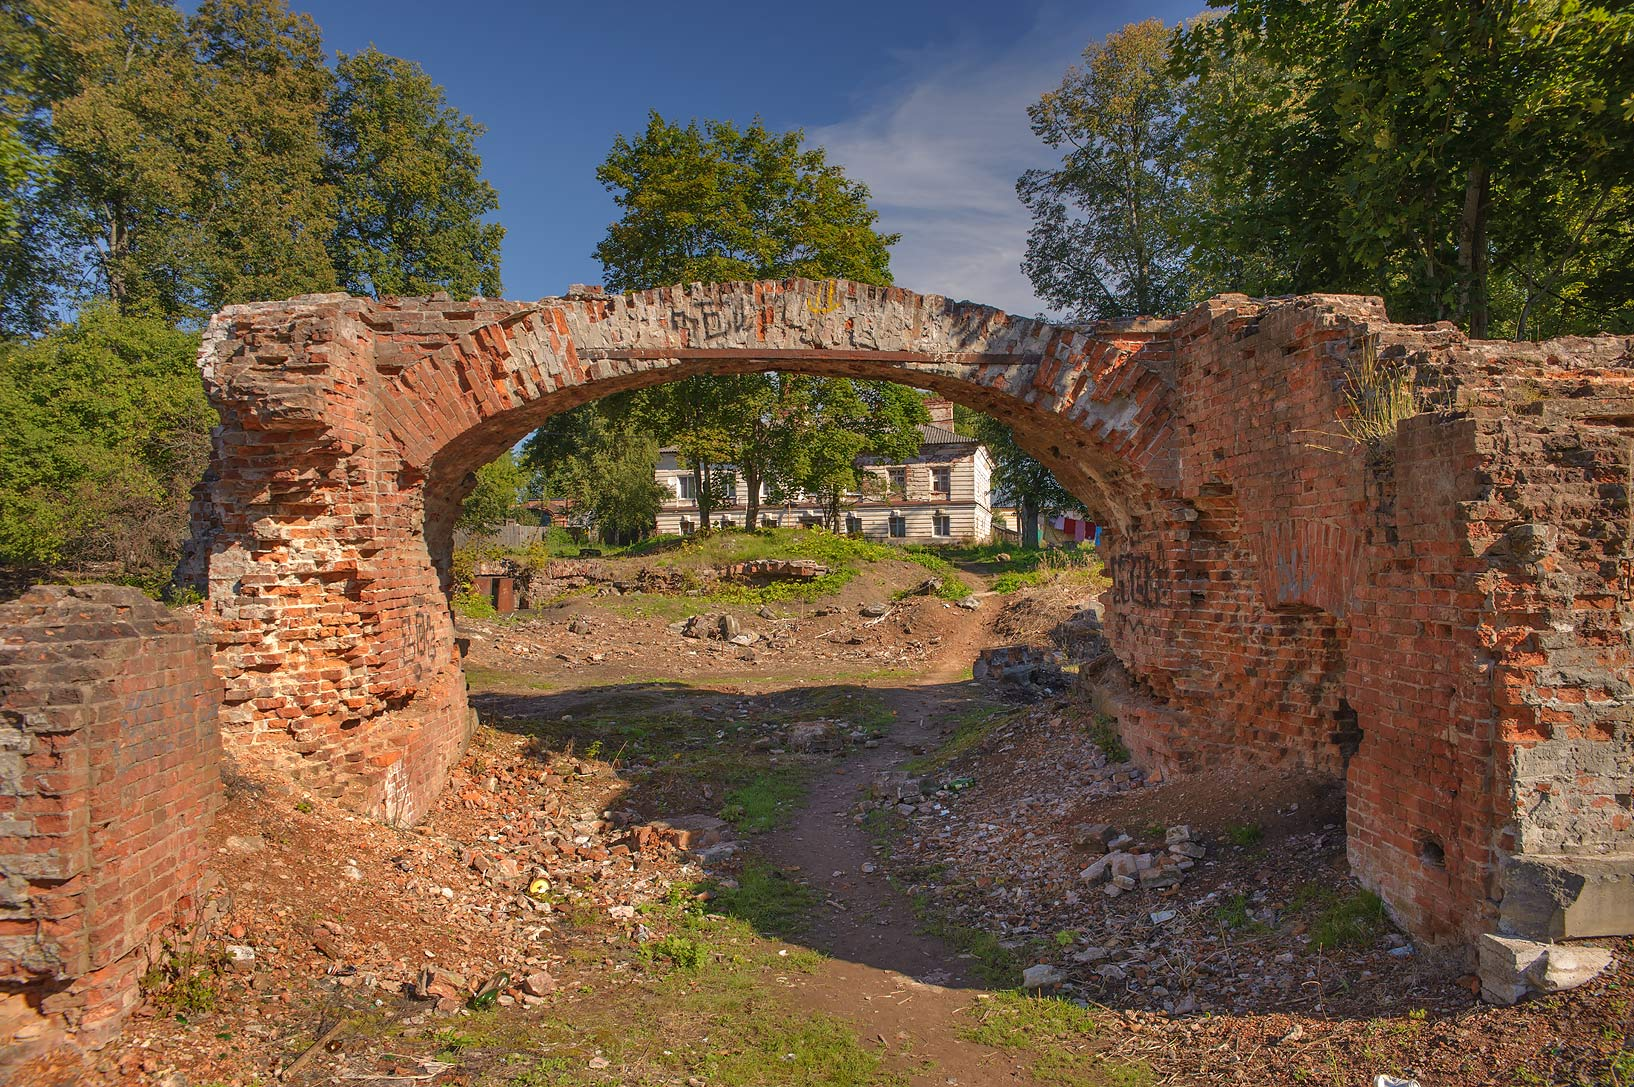 Stone arch of Polovtsev (Rapti) Palace in...from Luga. Leningrad Region, Russia